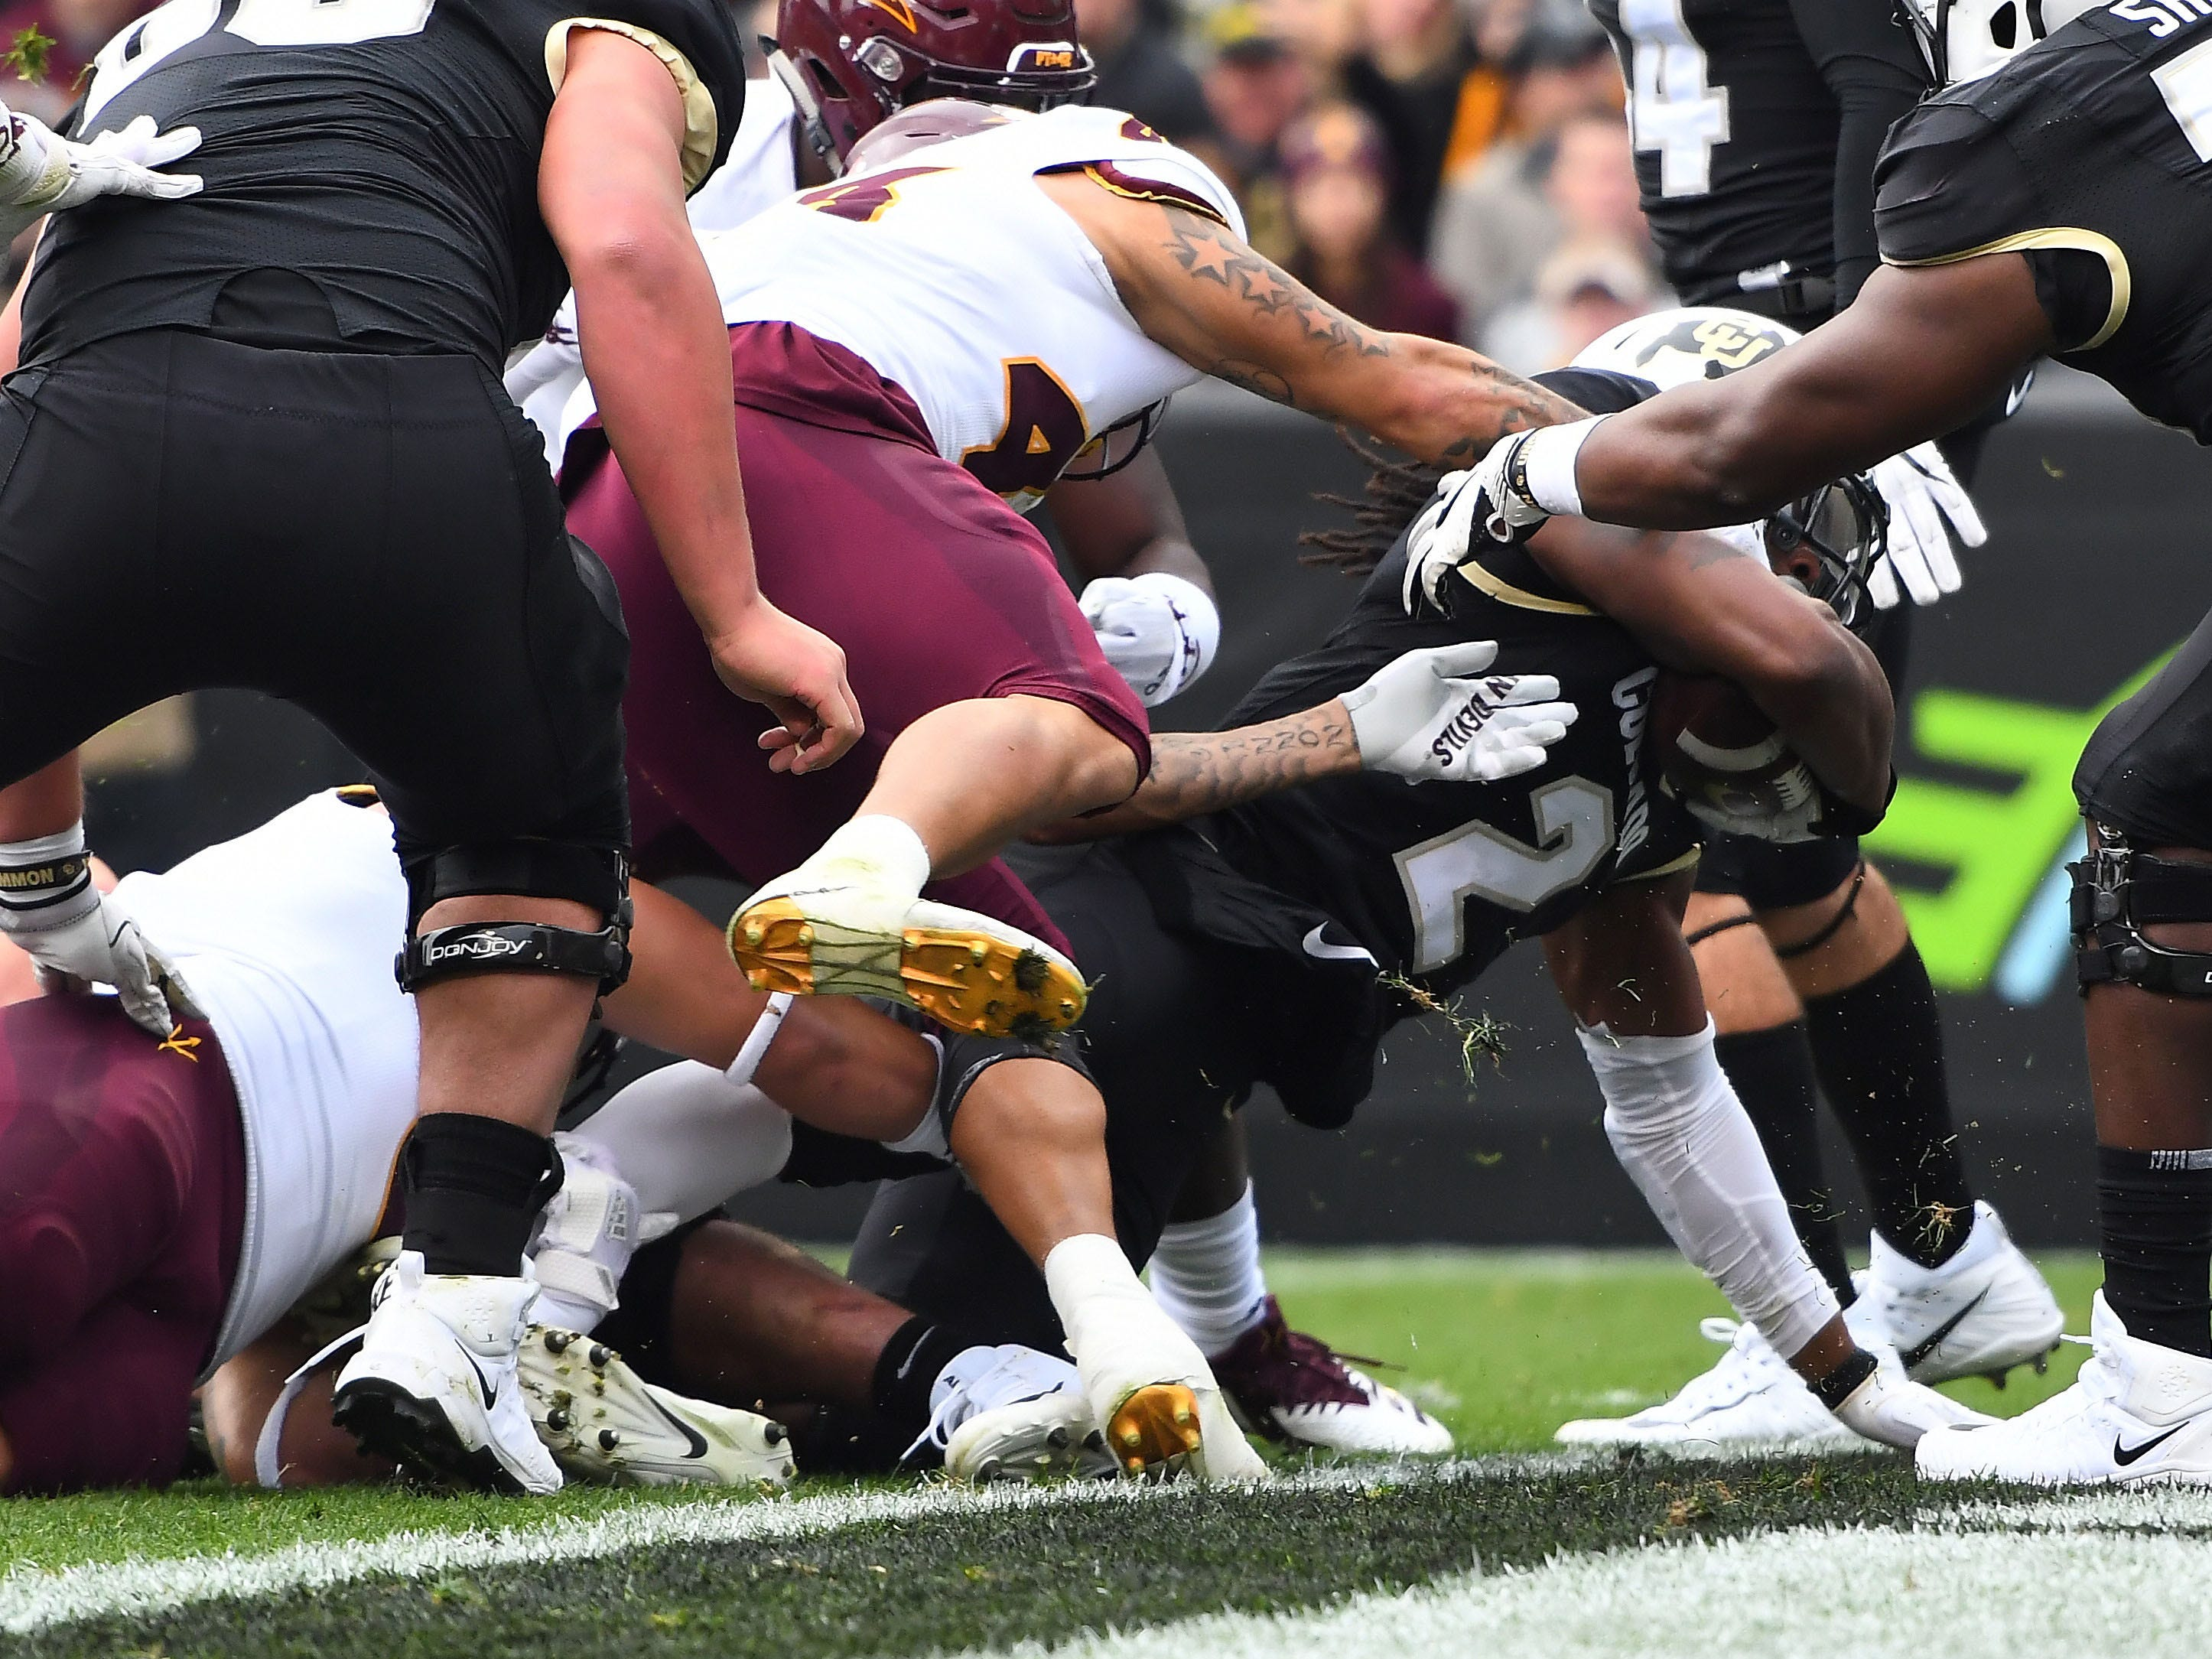 Oct 6, 2018; Boulder, CO, USA; Colorado Buffaloes wide receiver Laviska Shenault Jr. (2) dives for a touchdown in the first quarter against the Arizona State Sun Devils at Folsom Field. Mandatory Credit: Ron Chenoy-USA TODAY Sports